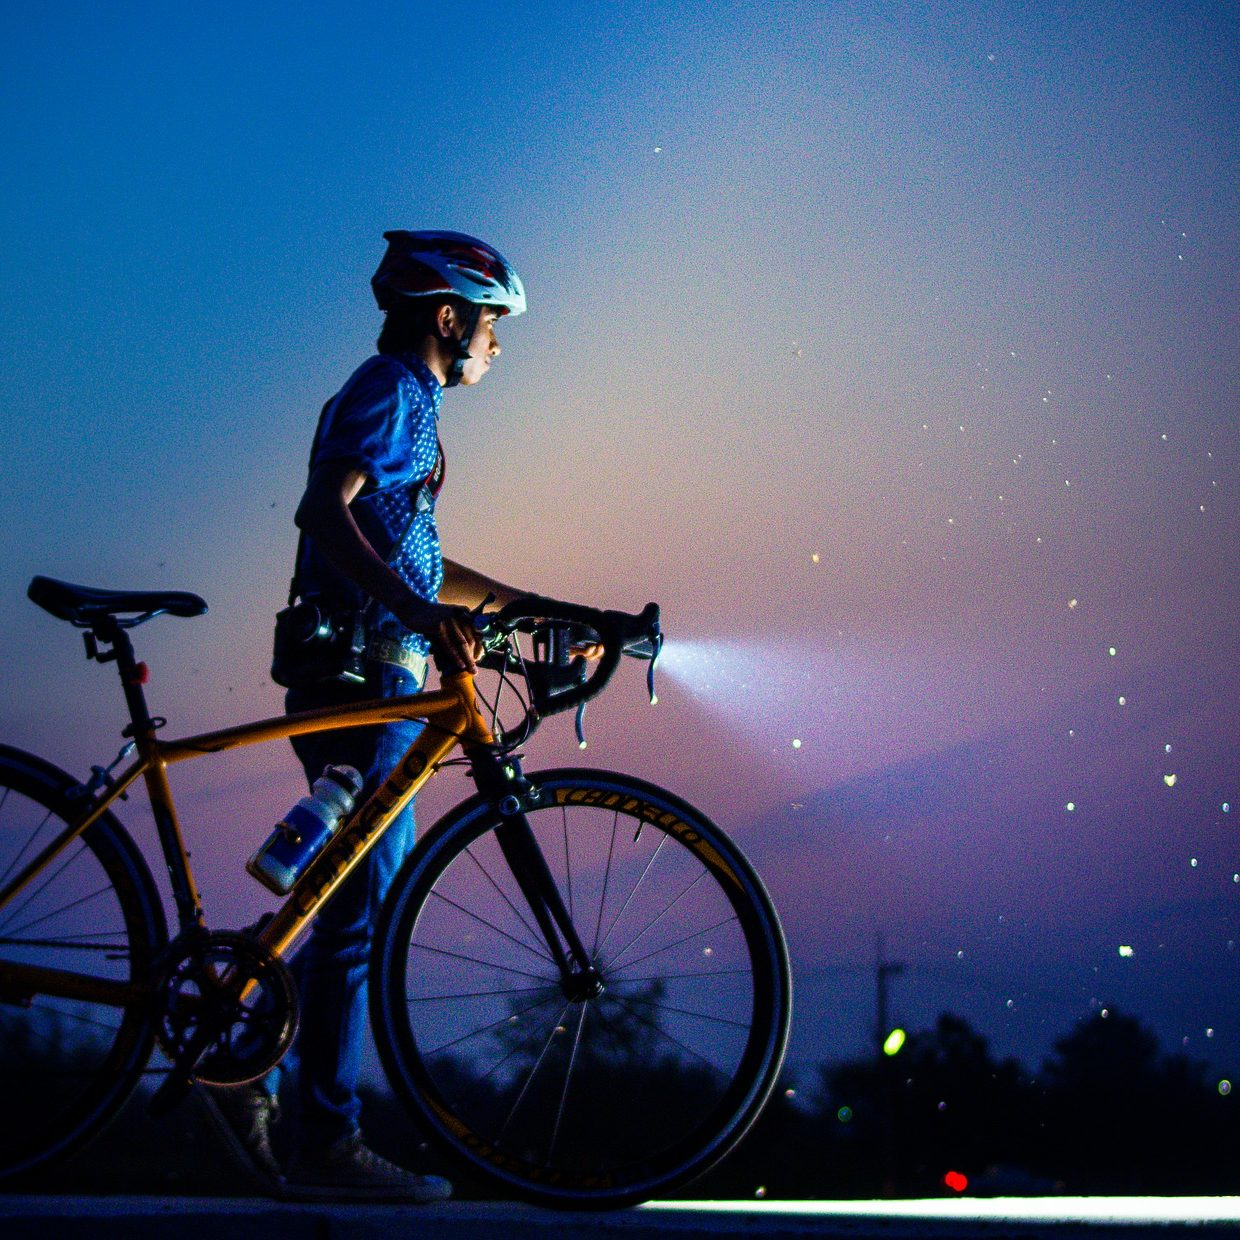 bicycle-2318681_1920